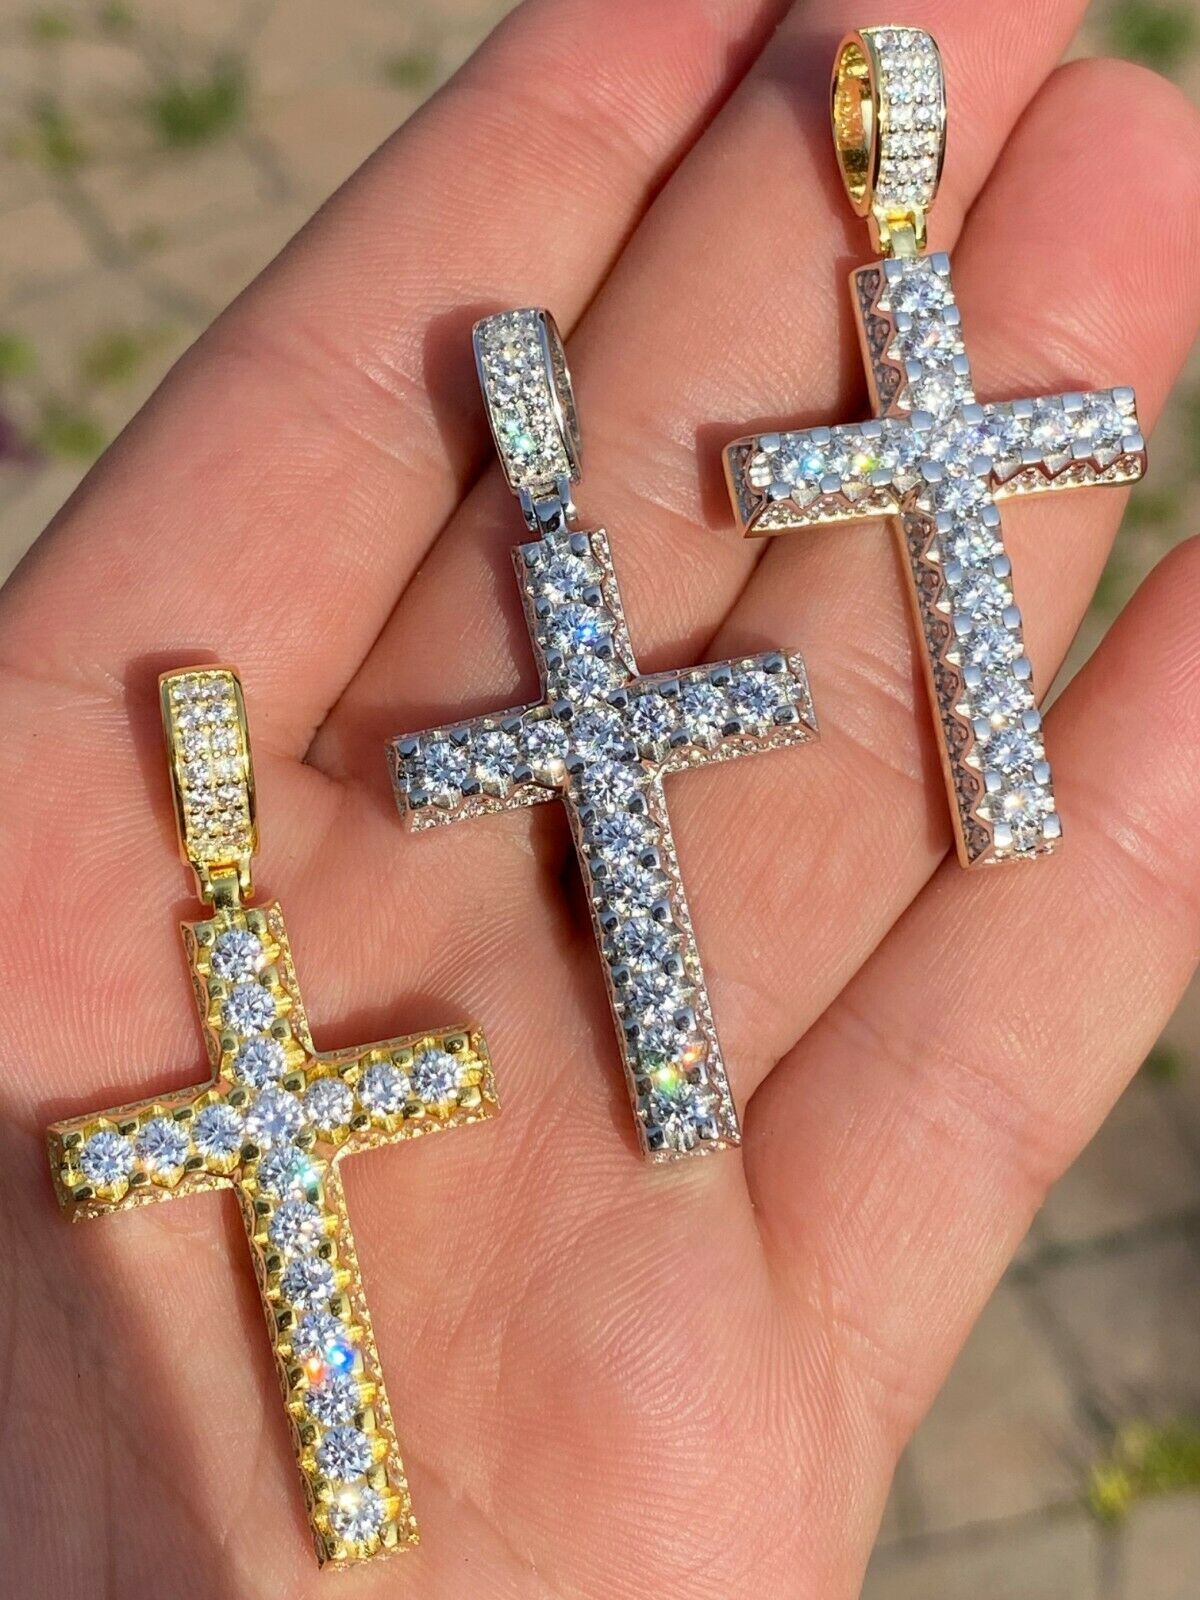 Hip Hop Nail Cross Pendant Simulated Diamond Sterling Silver Free Necklace Charm